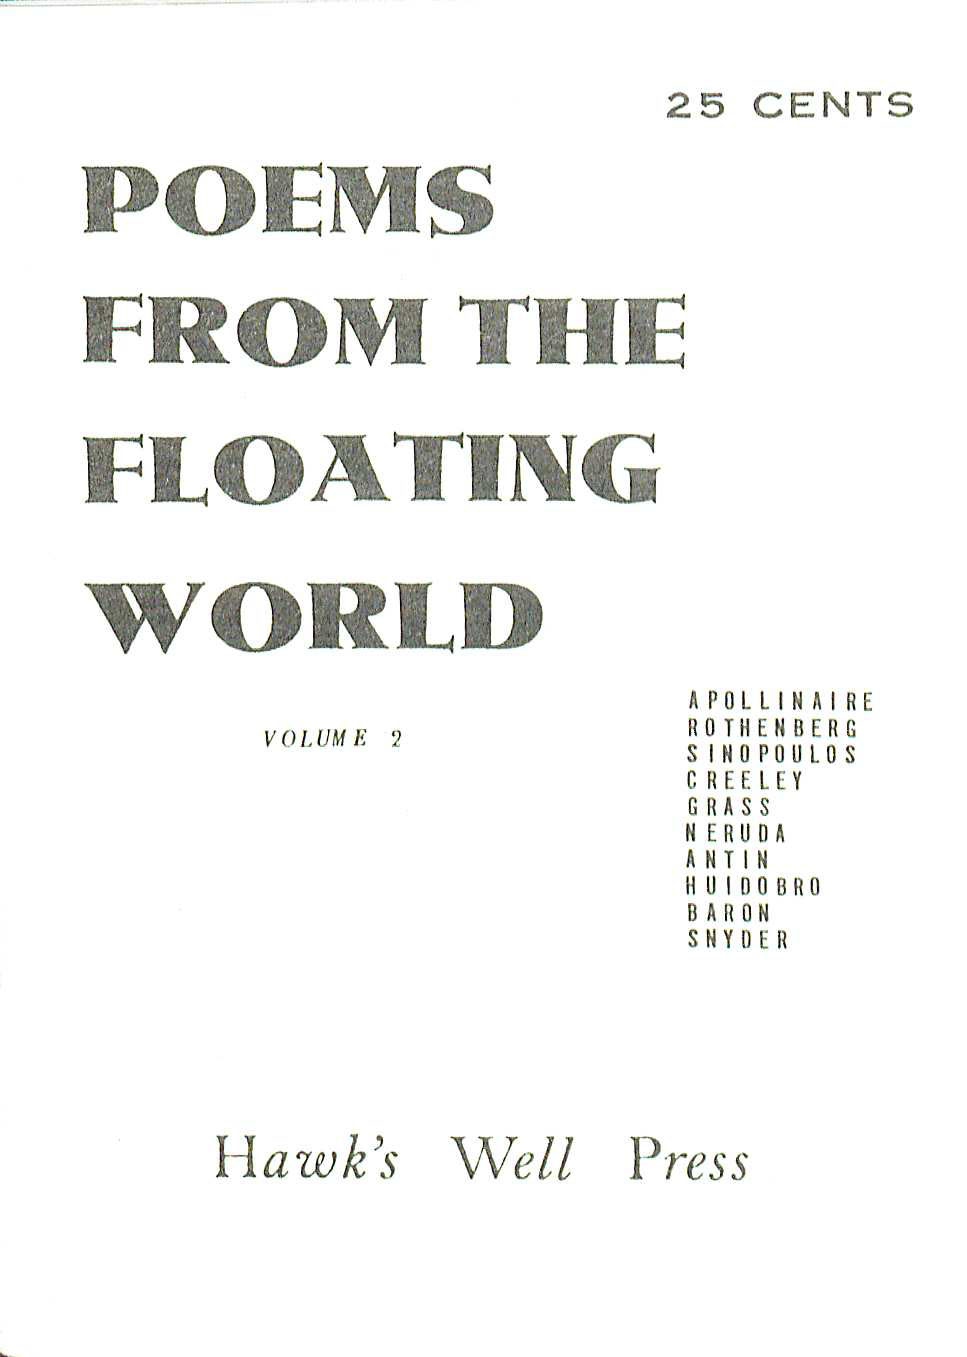 Poems from the Floating World. (PS580 .P63 v.3. Clifton Waller Barrett Library of American Literature. Image by Petrina Jackson)